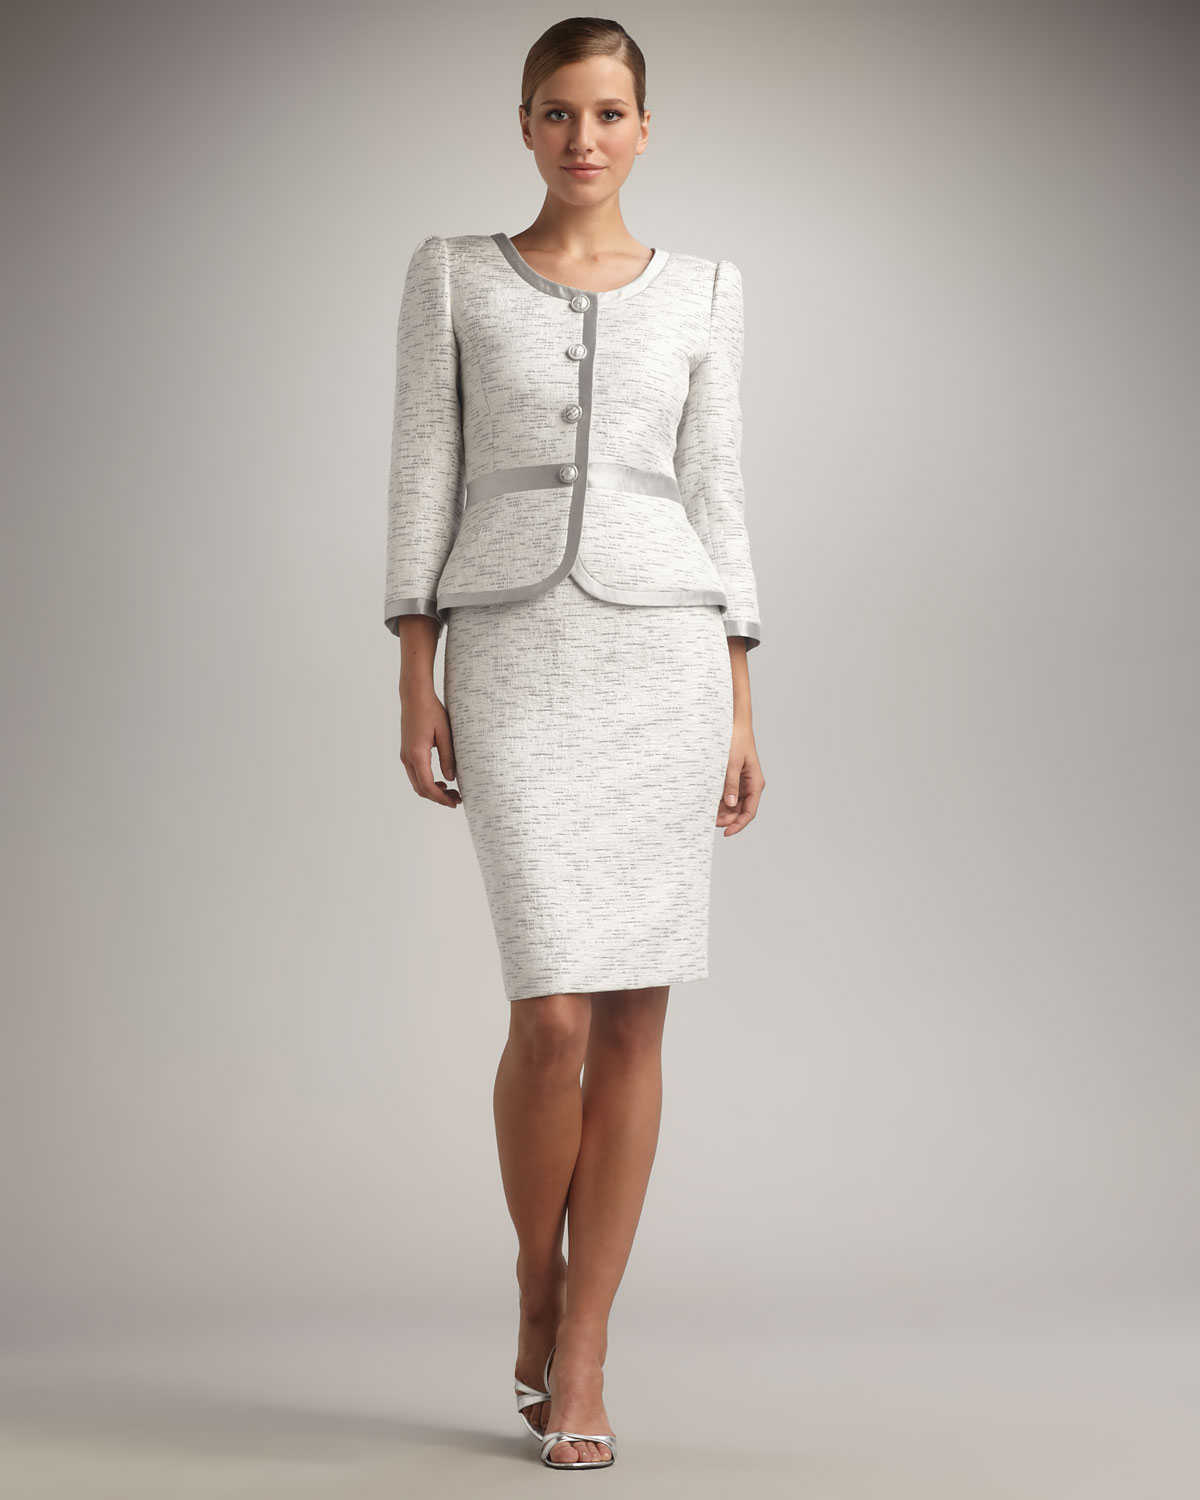 White Skirt Suit - Skirts